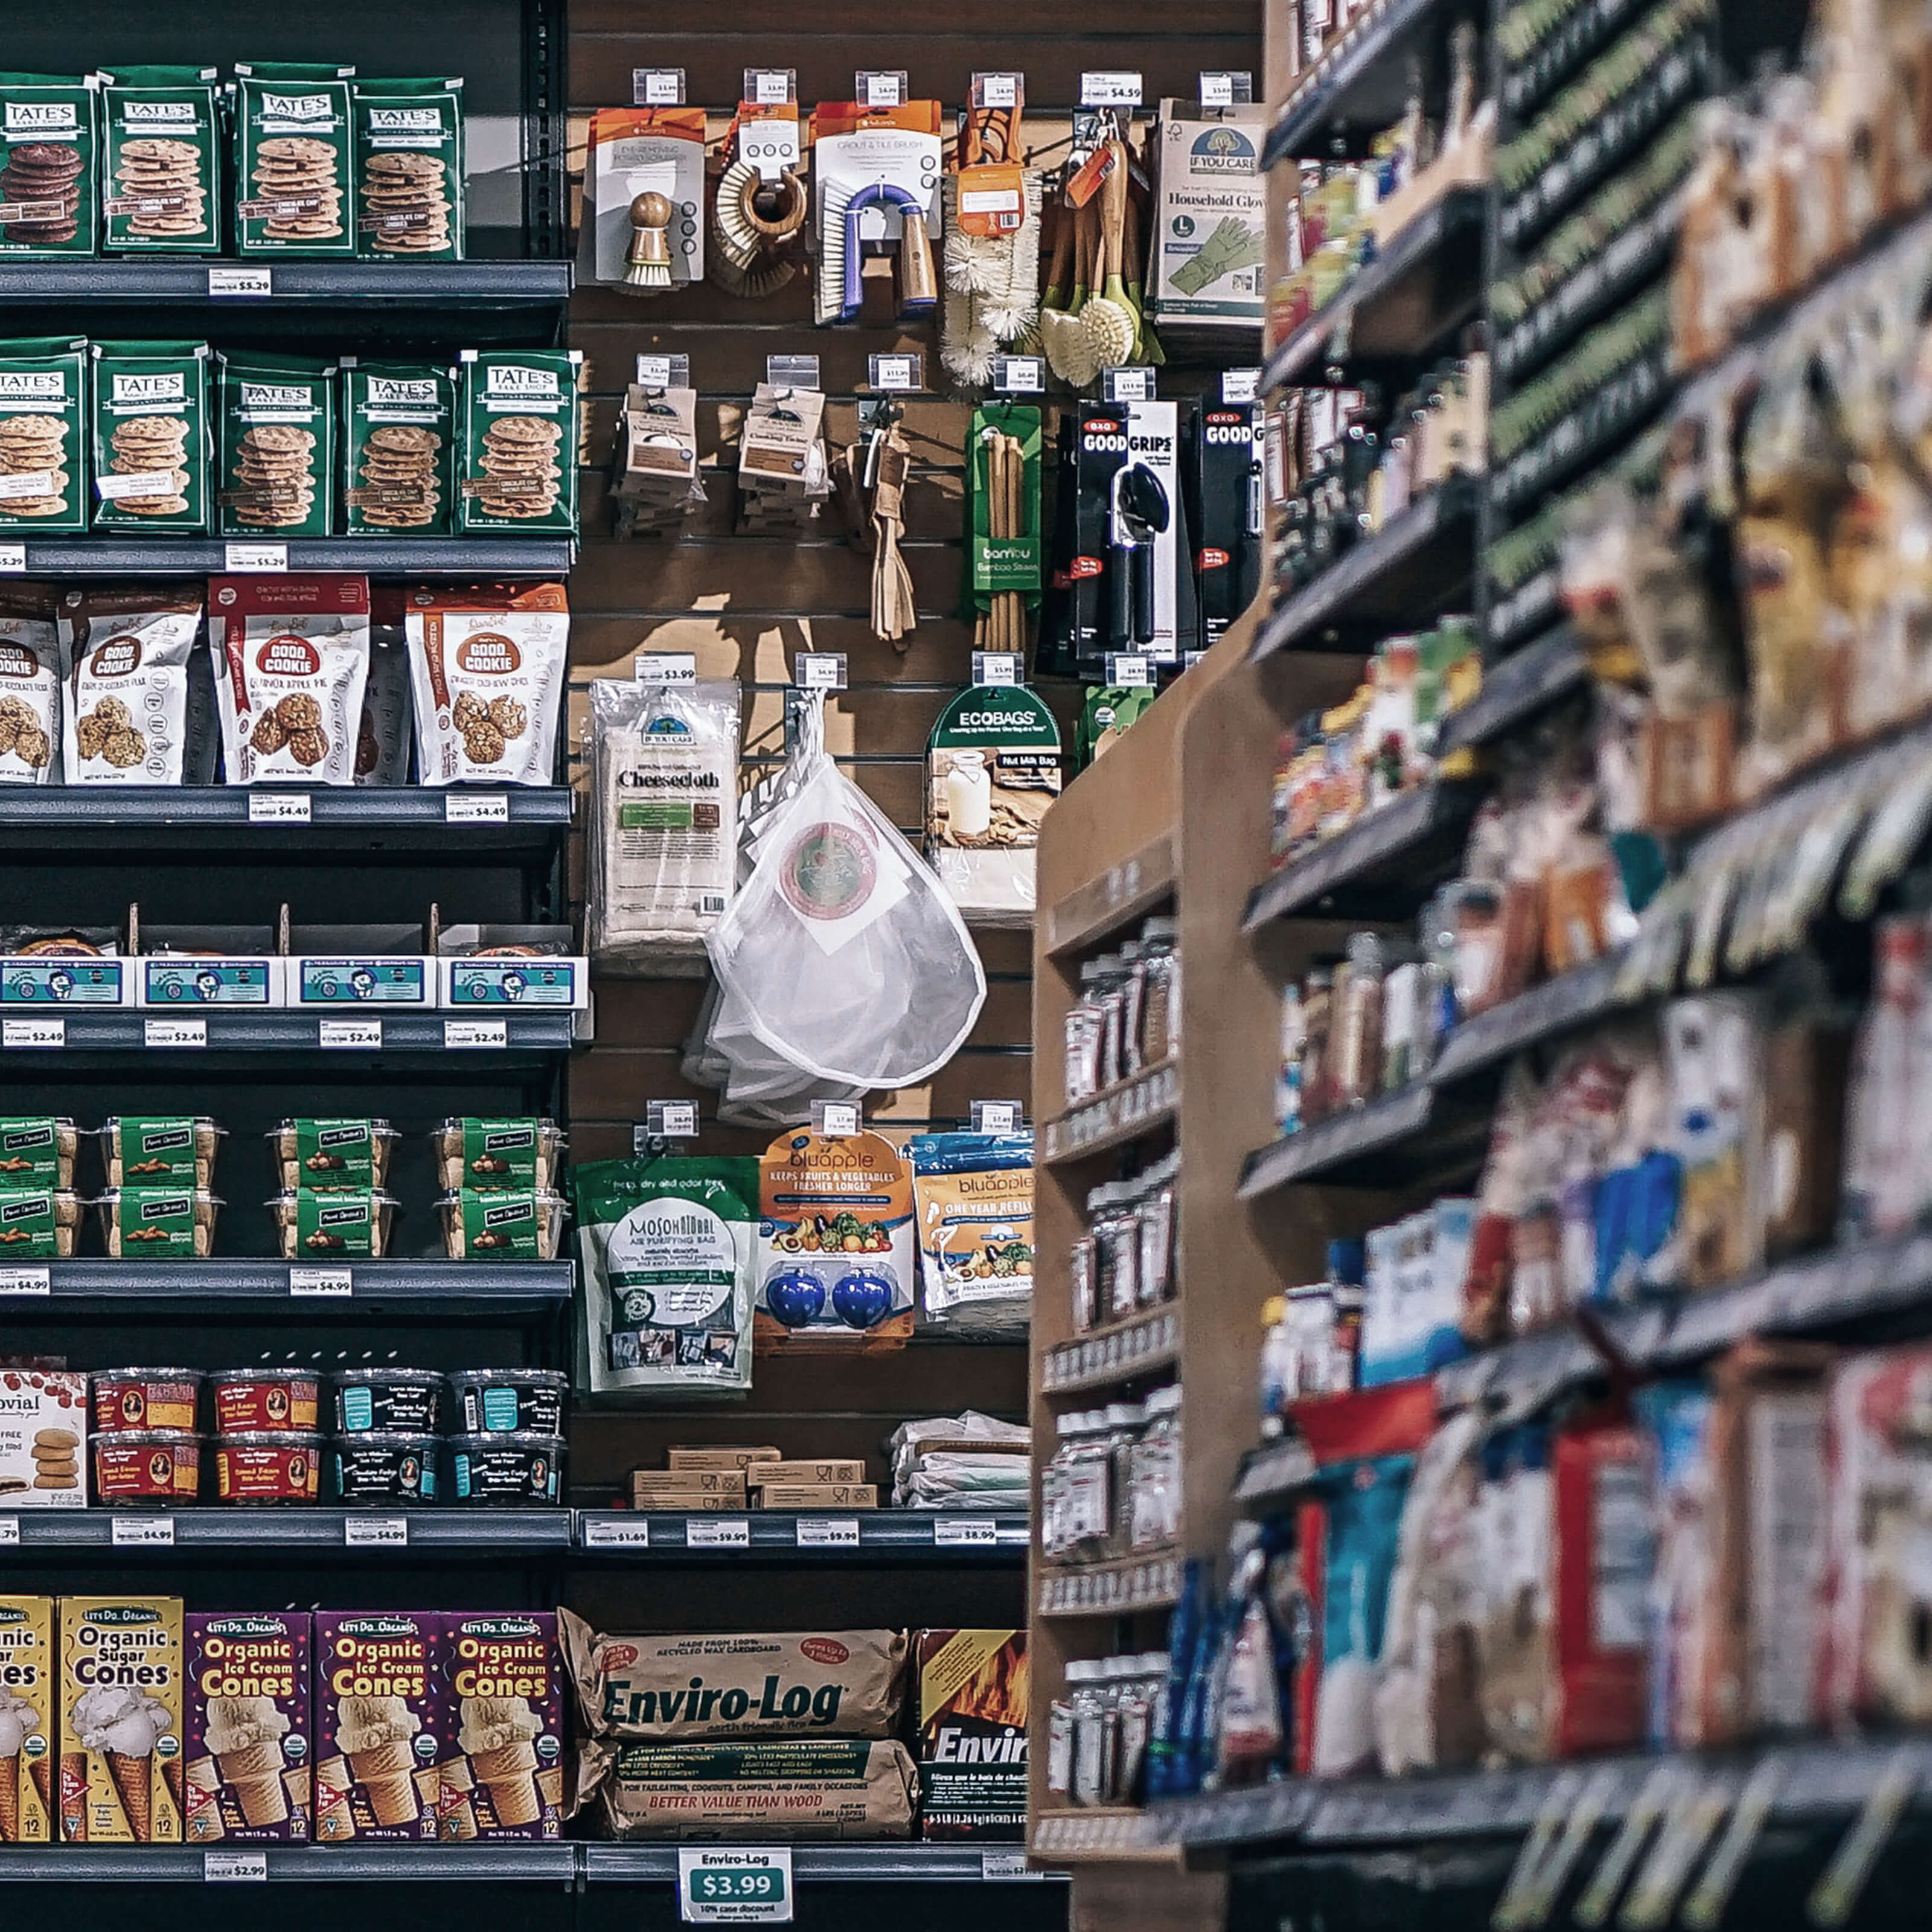 store, products, shelves